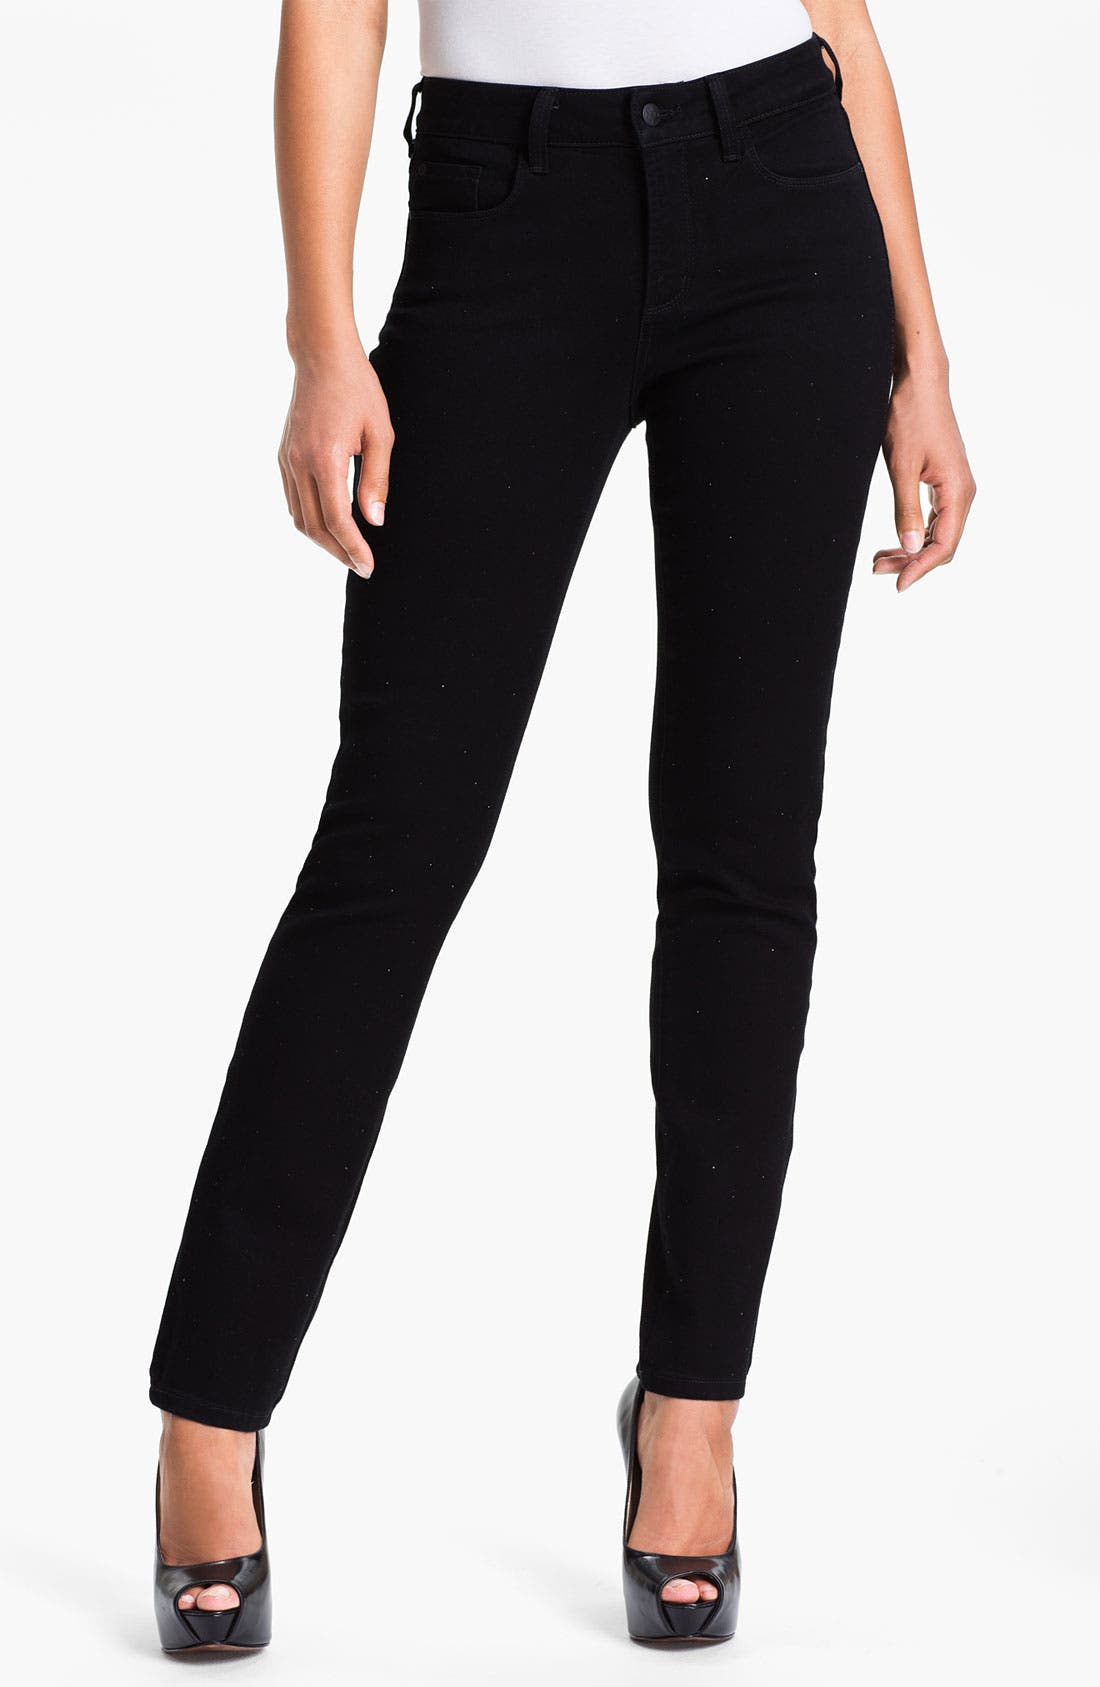 Alternate Image 1 Selected - NYDJ 'Sheri' Sparkle Skinny Stretch Jeans